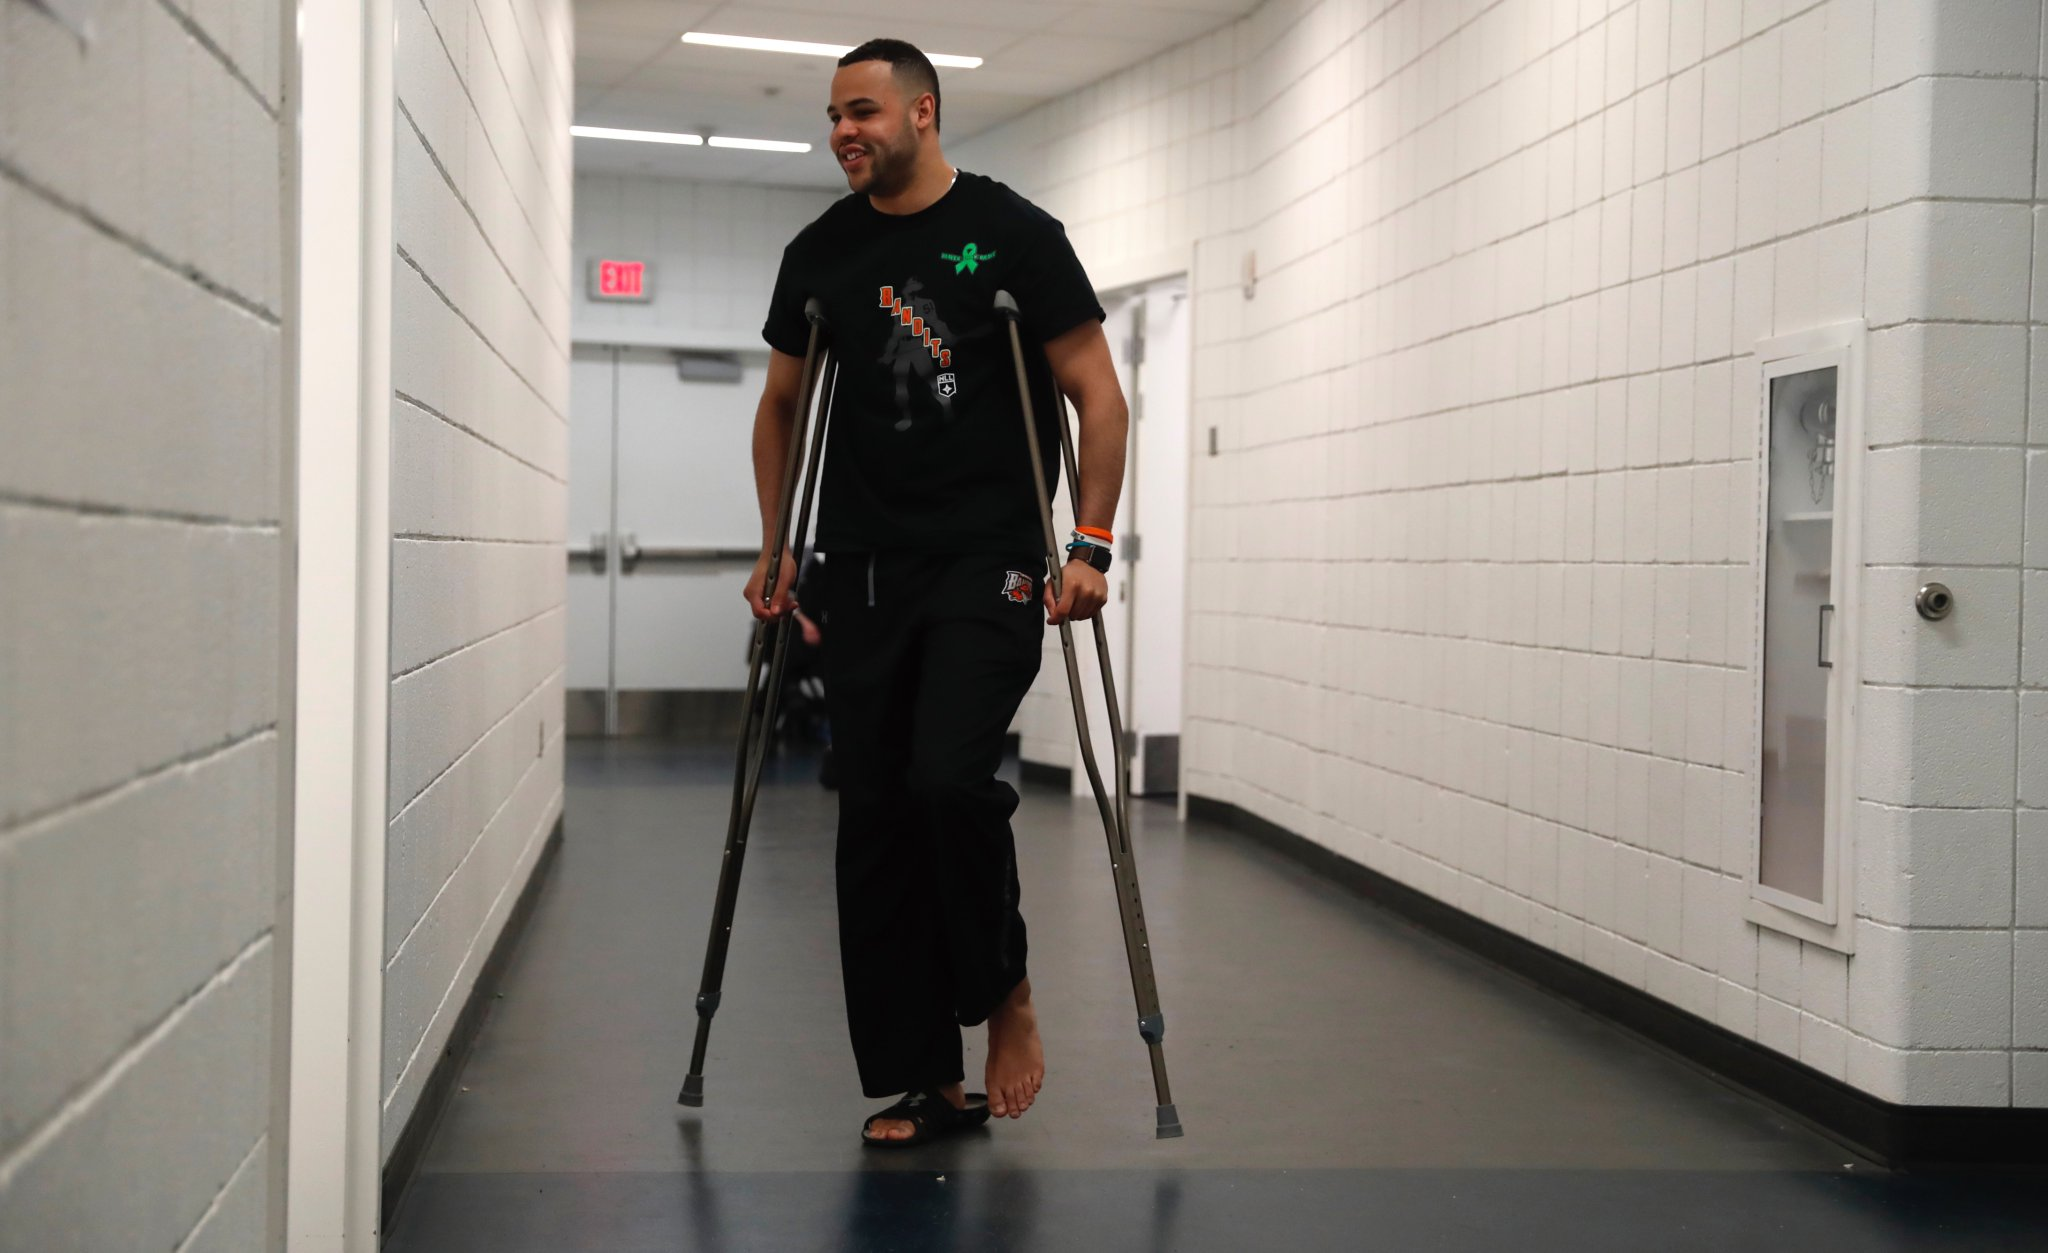 Dhane Smith was out of the lineup for the Bandits Saturday night with a lower body injury. (Photo by Harry Scull Jr. / Buffalo News)